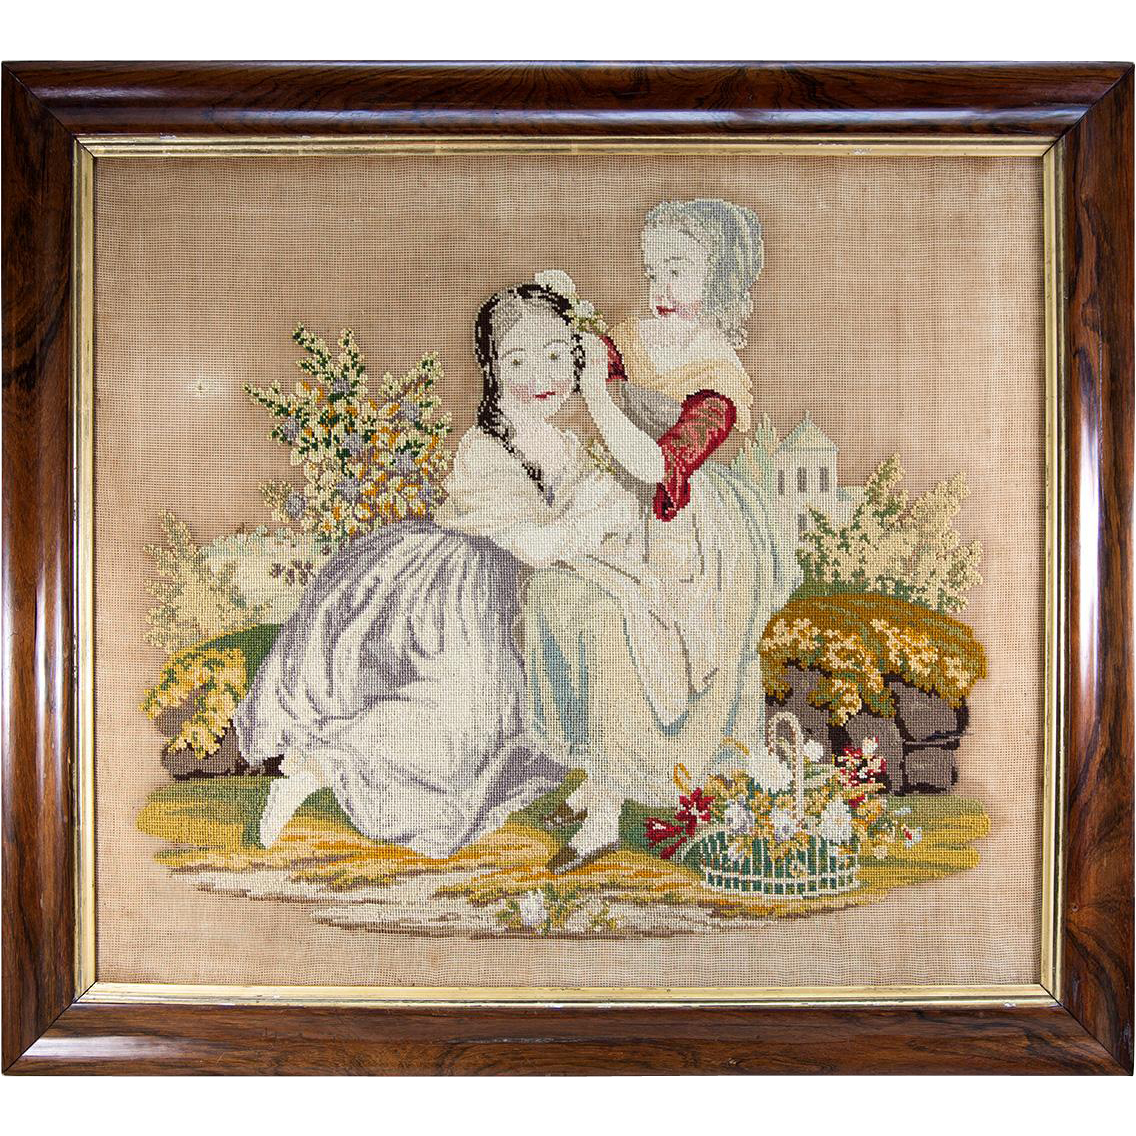 charming large georgian to victorian era needlepoint  needlework from antiques